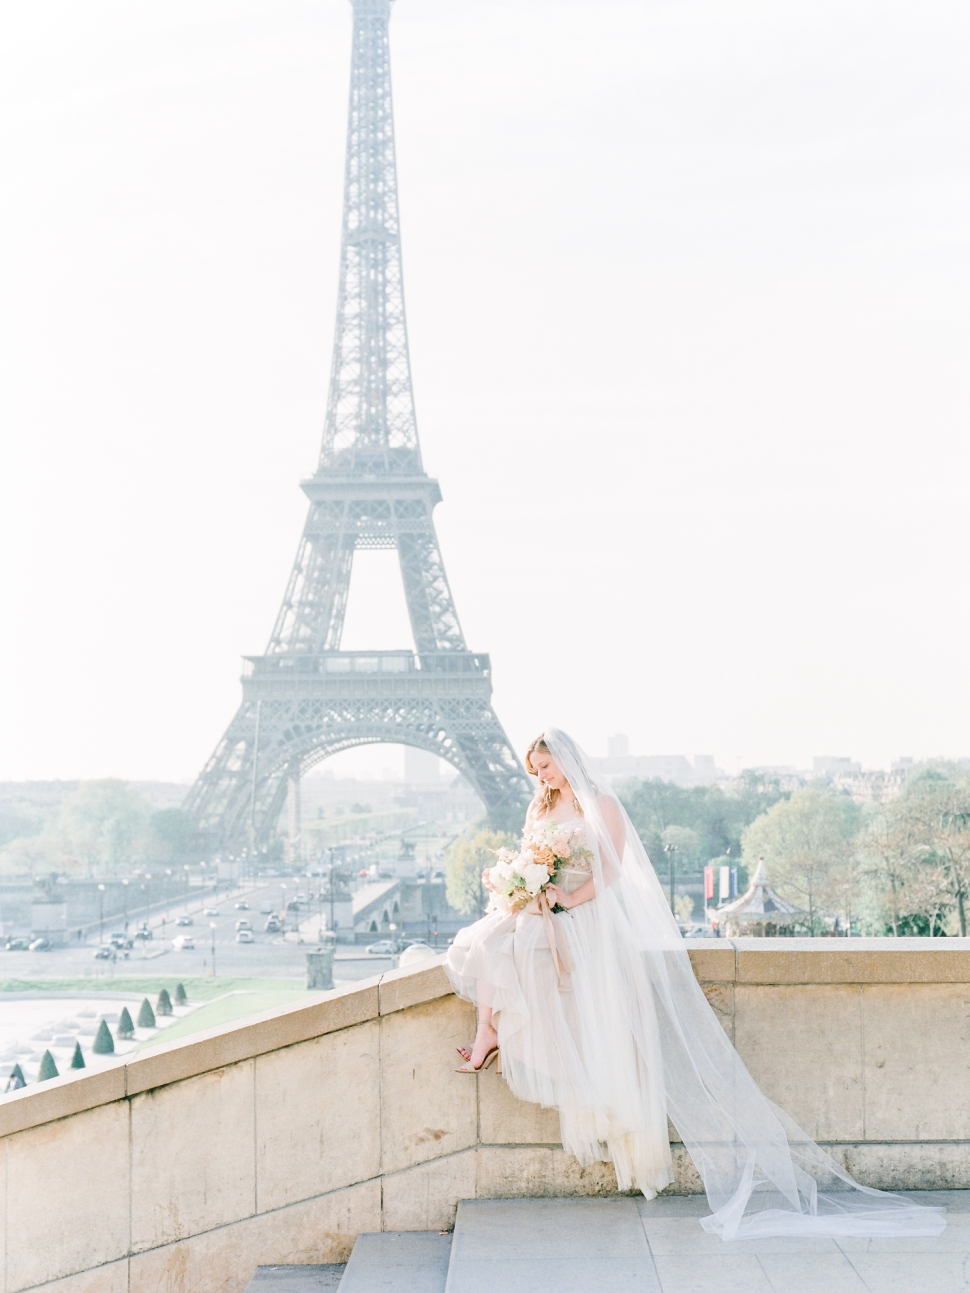 Paris-France-Destination-Wedding-Photographer-Cassi-Claire-Shangri-La-Paris-Wedding-Photos_060.jpg